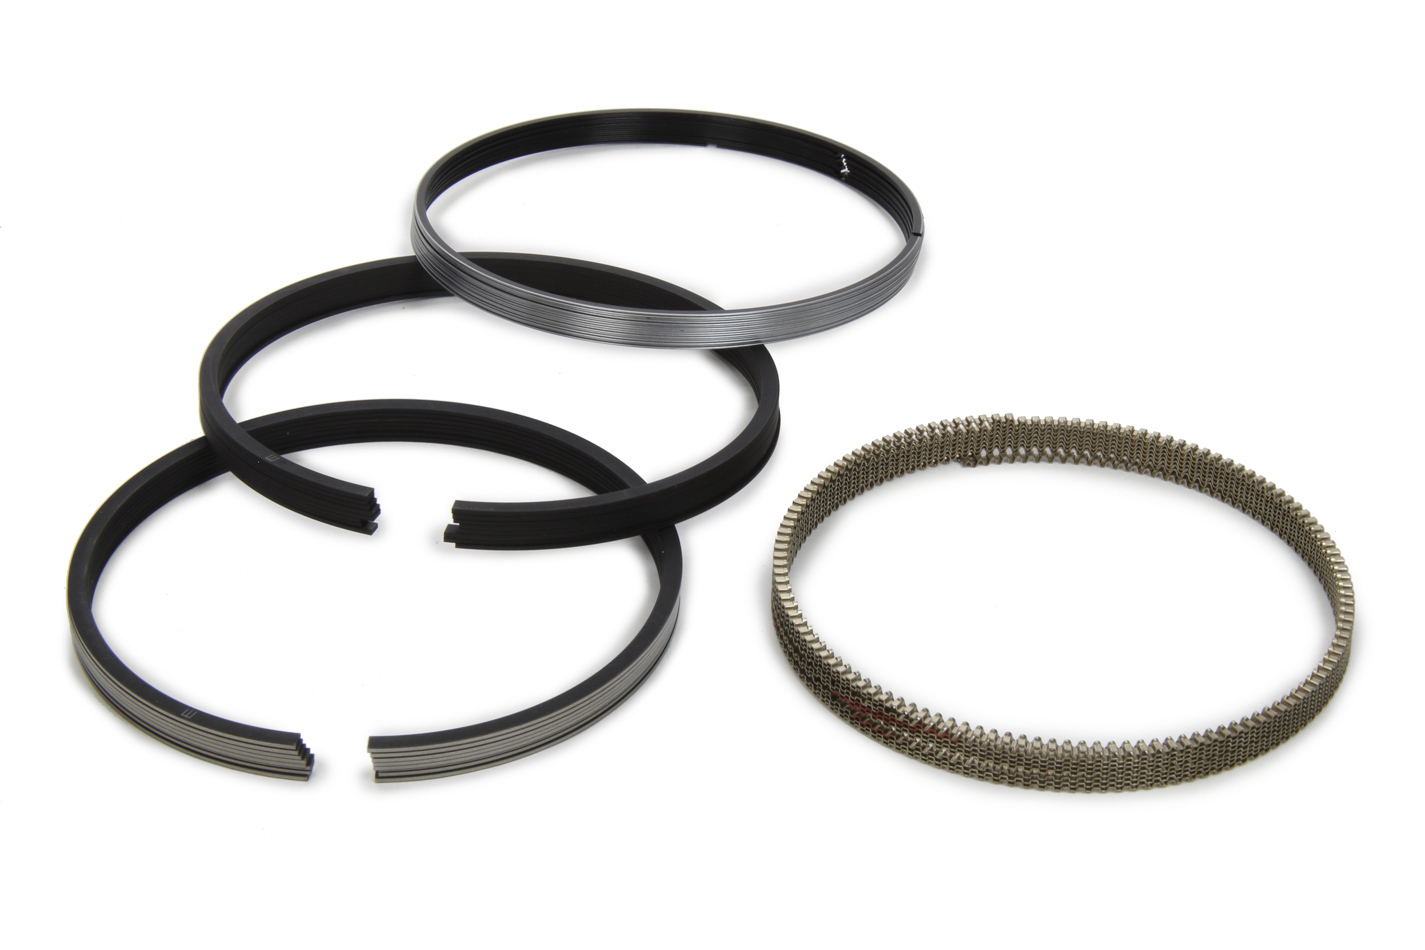 Mahle Pistons 4030MS Piston Rings, 4.030 in Bore, File Fit, 1/16 x 1/16 x 3/16 in Thick, Standard Tension, Iron, 8 Cylinder Set, Kit